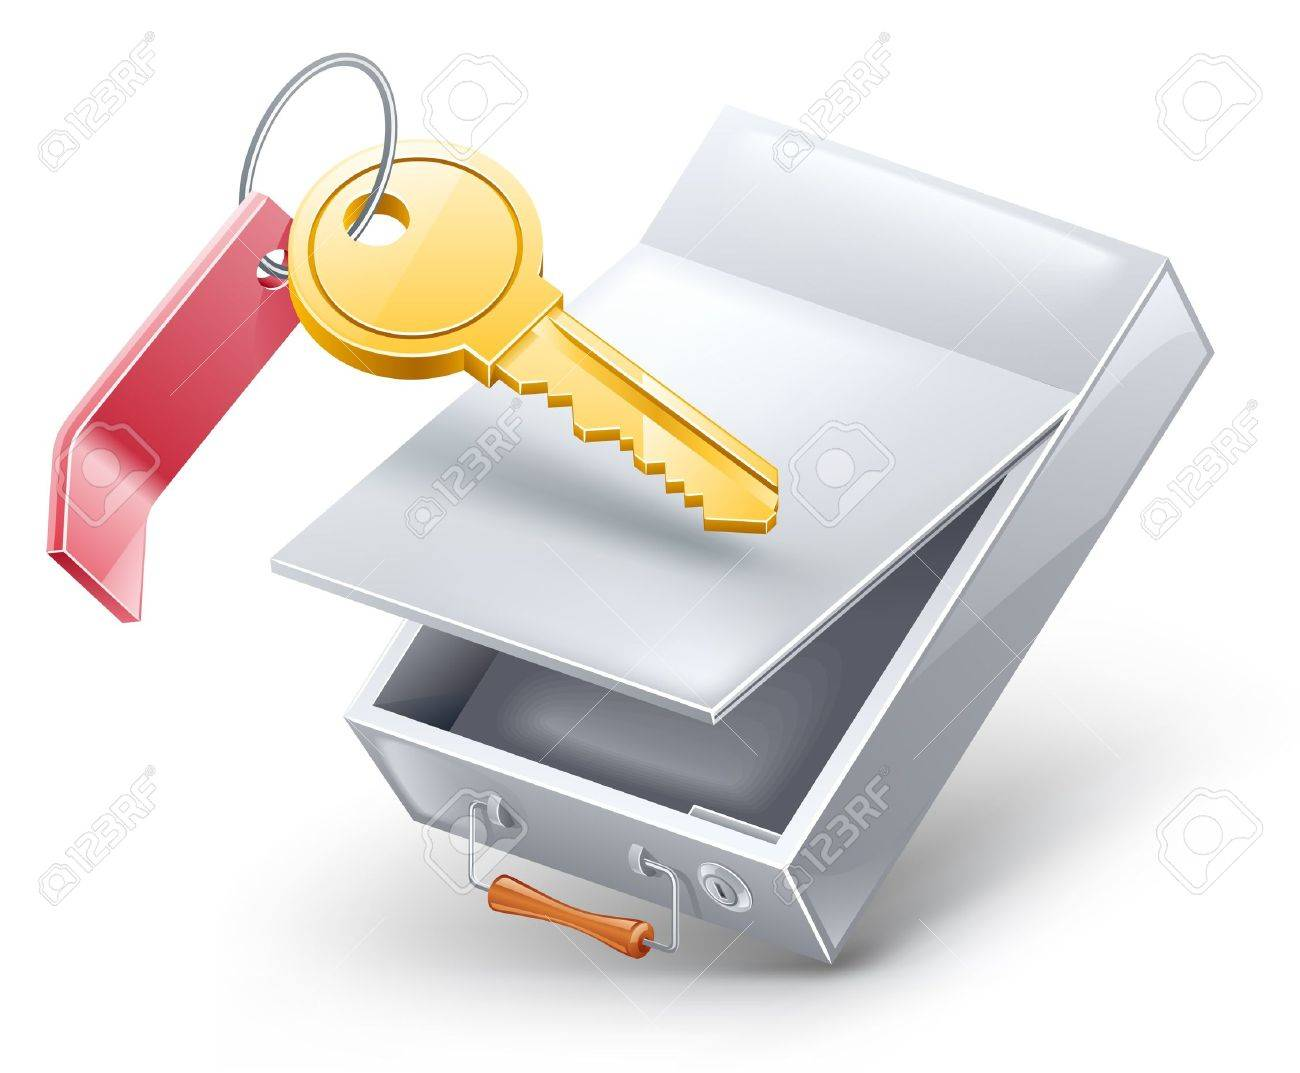 Vector illustration of safety deposit box with key on white background. Stock Vector - 12497099